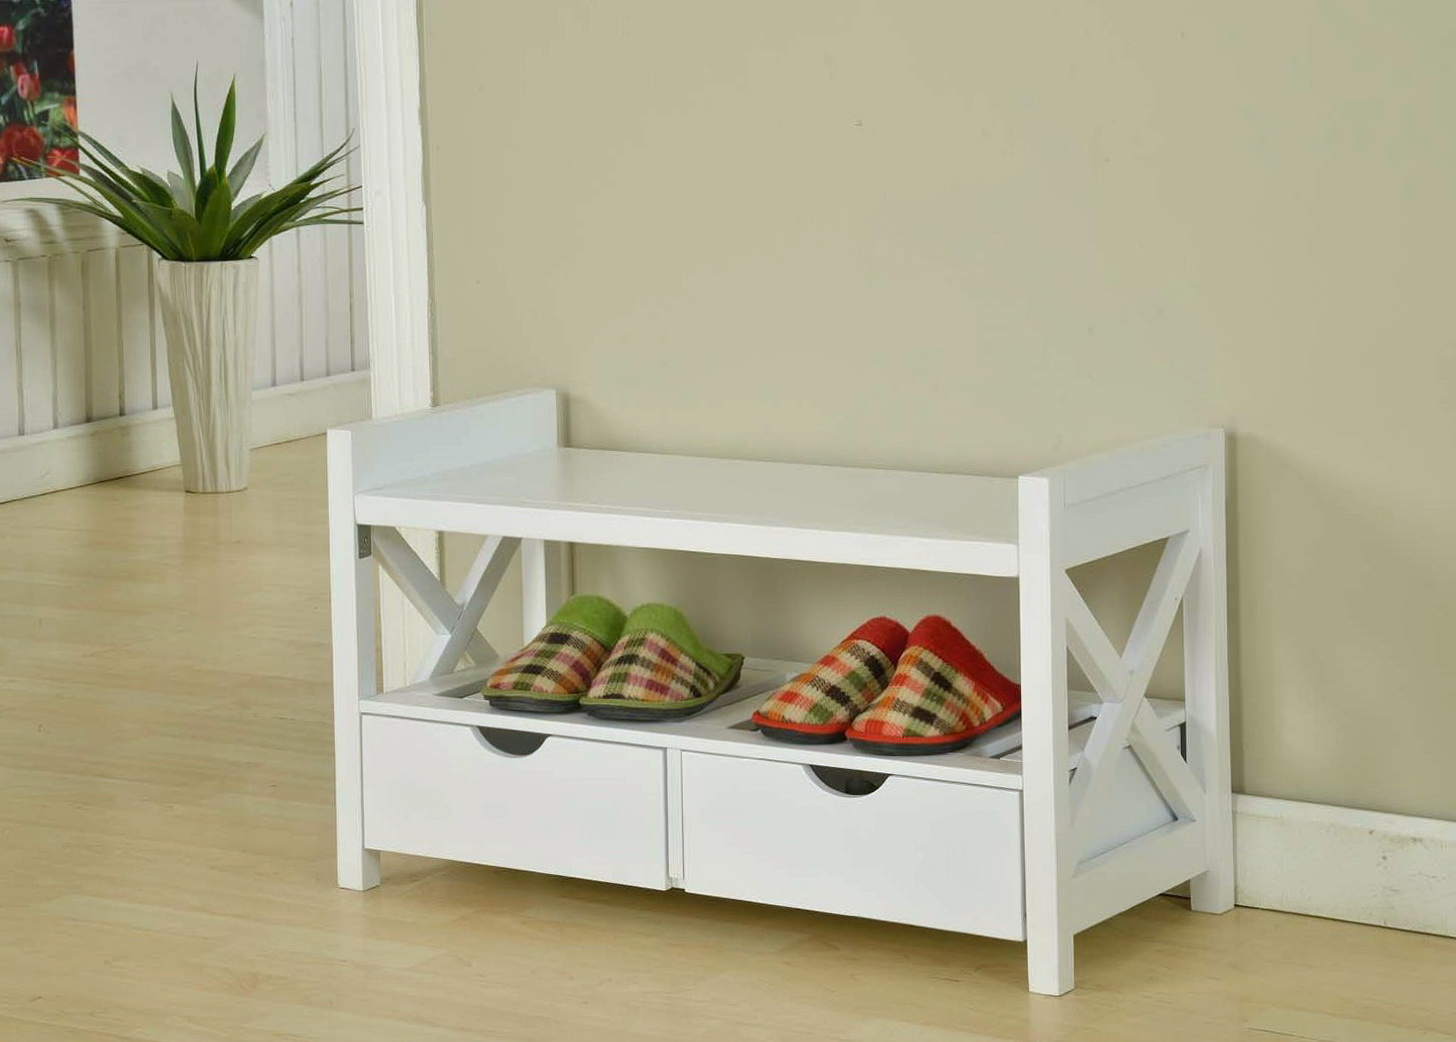 Small entryway bench ikea home design ideas Entryway bench ikea